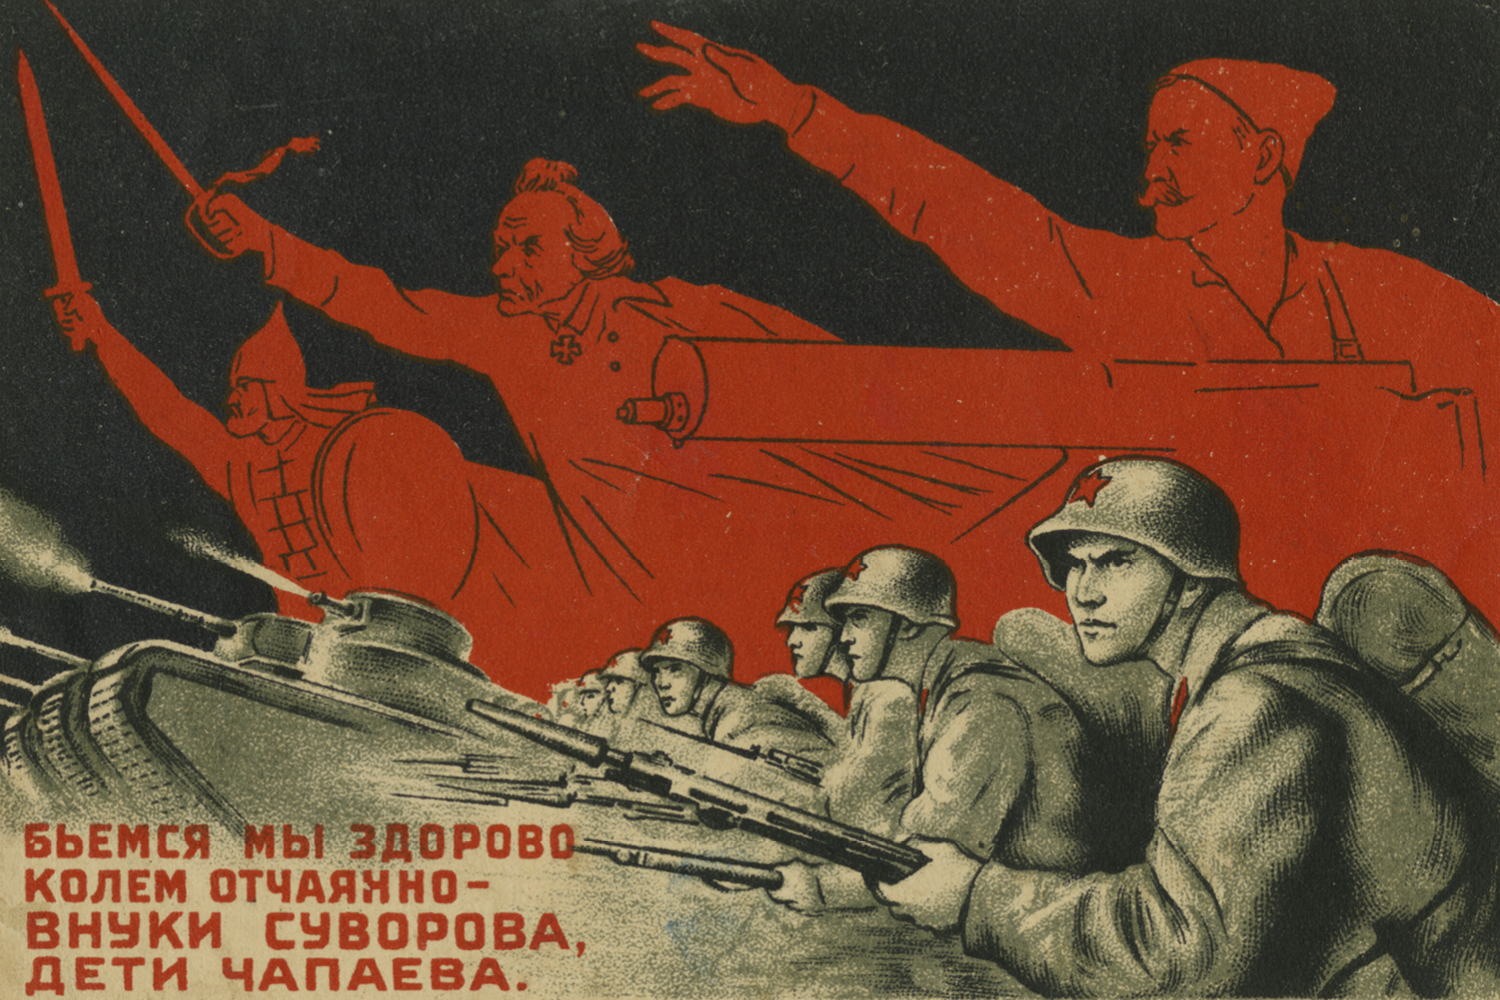 """We fight well. We jab them fiercely. Grandsons of Suvorov, Children of Chapaev."" 1942"